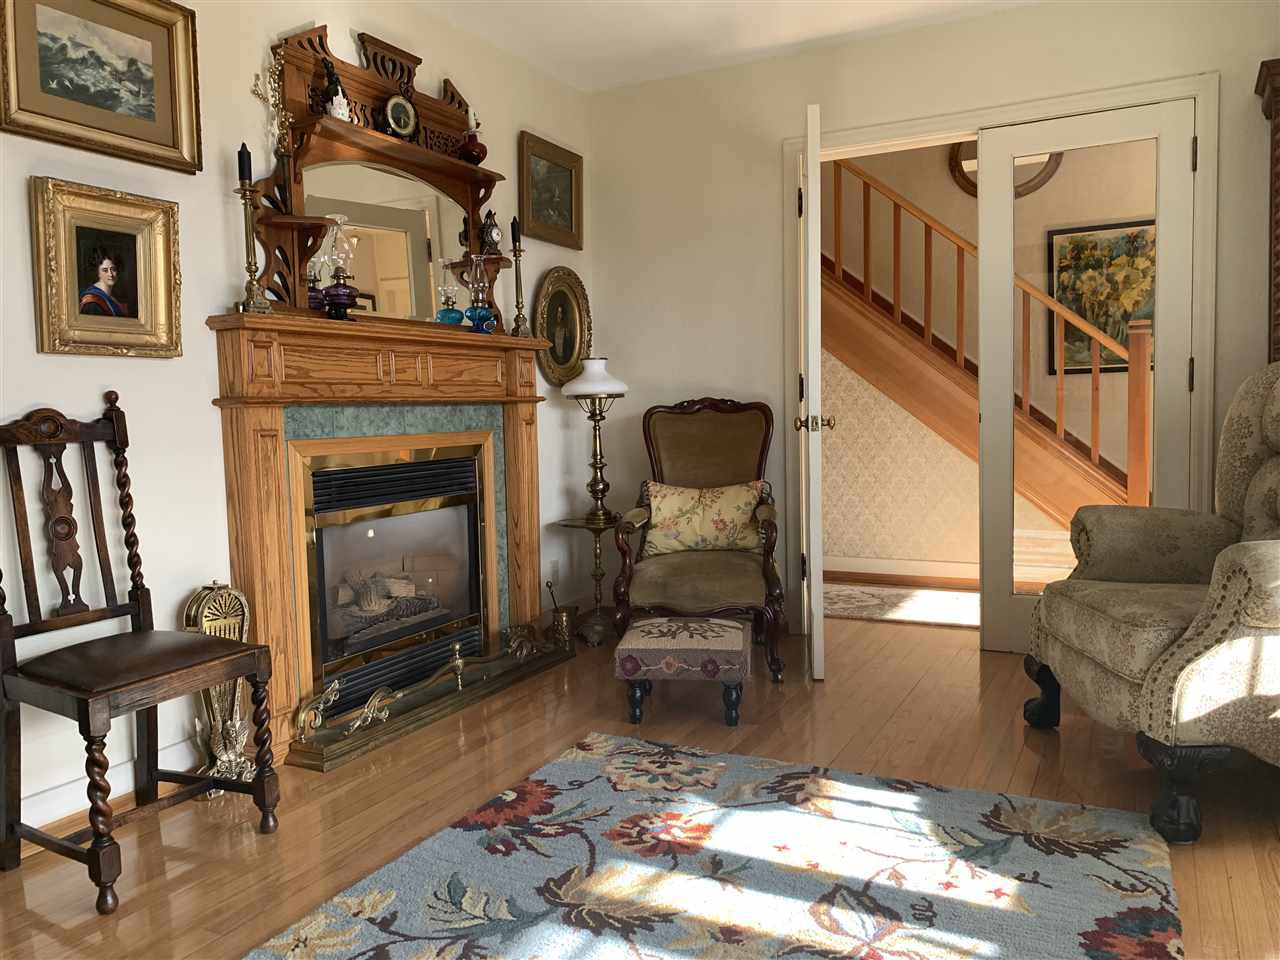 Photo 5: Photos: 3002 GOLD DIGGER Drive: 150 Mile House House for sale (Williams Lake (Zone 27))  : MLS®# R2430826